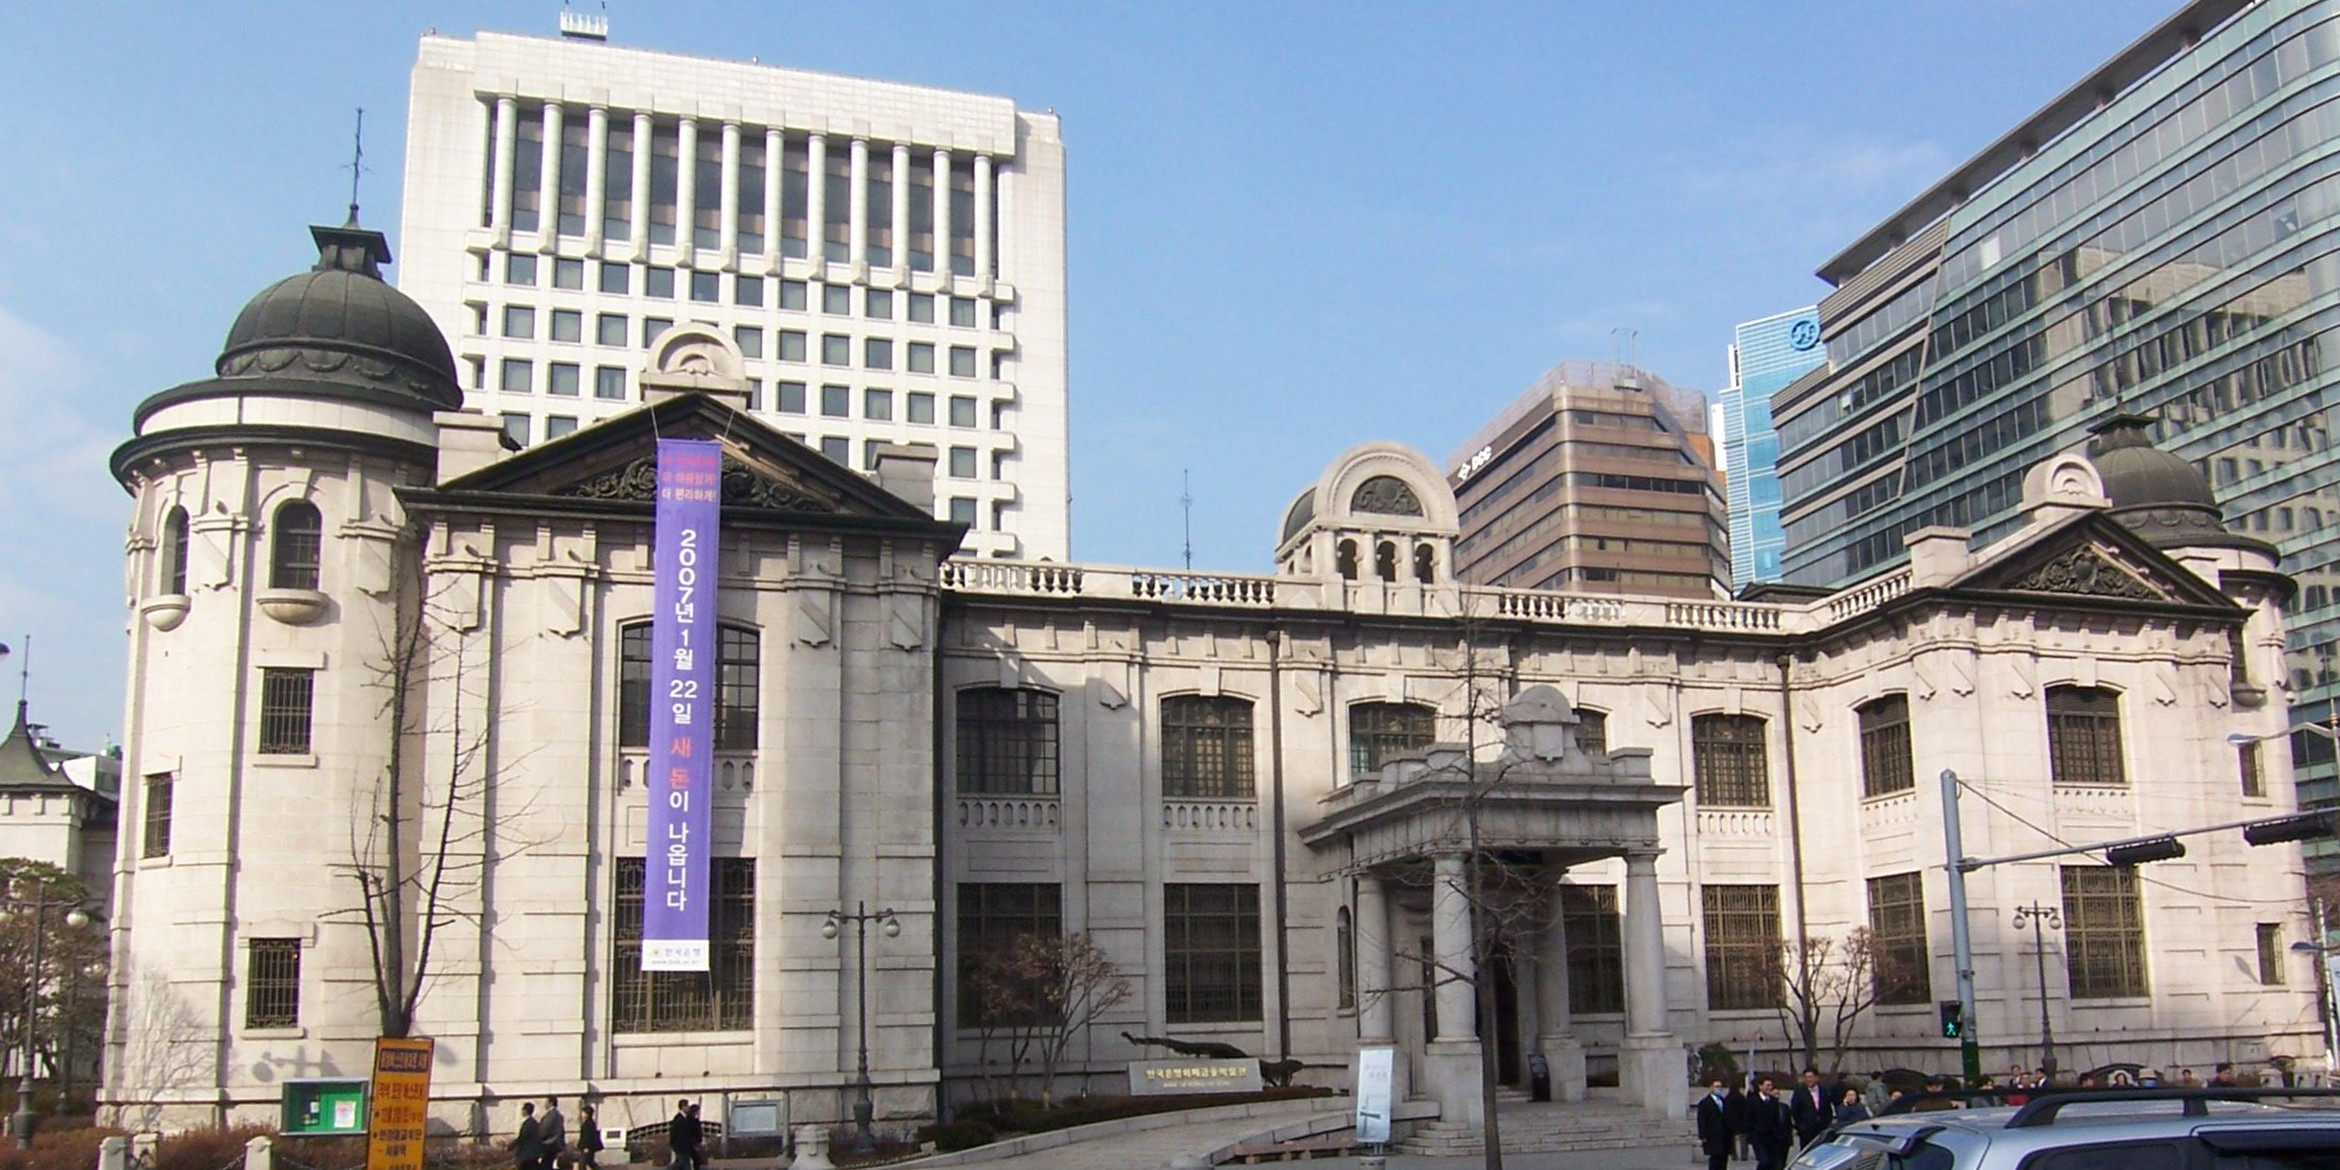 The Bank of Korea building in downtown Seoul. The building was completed in 1912.